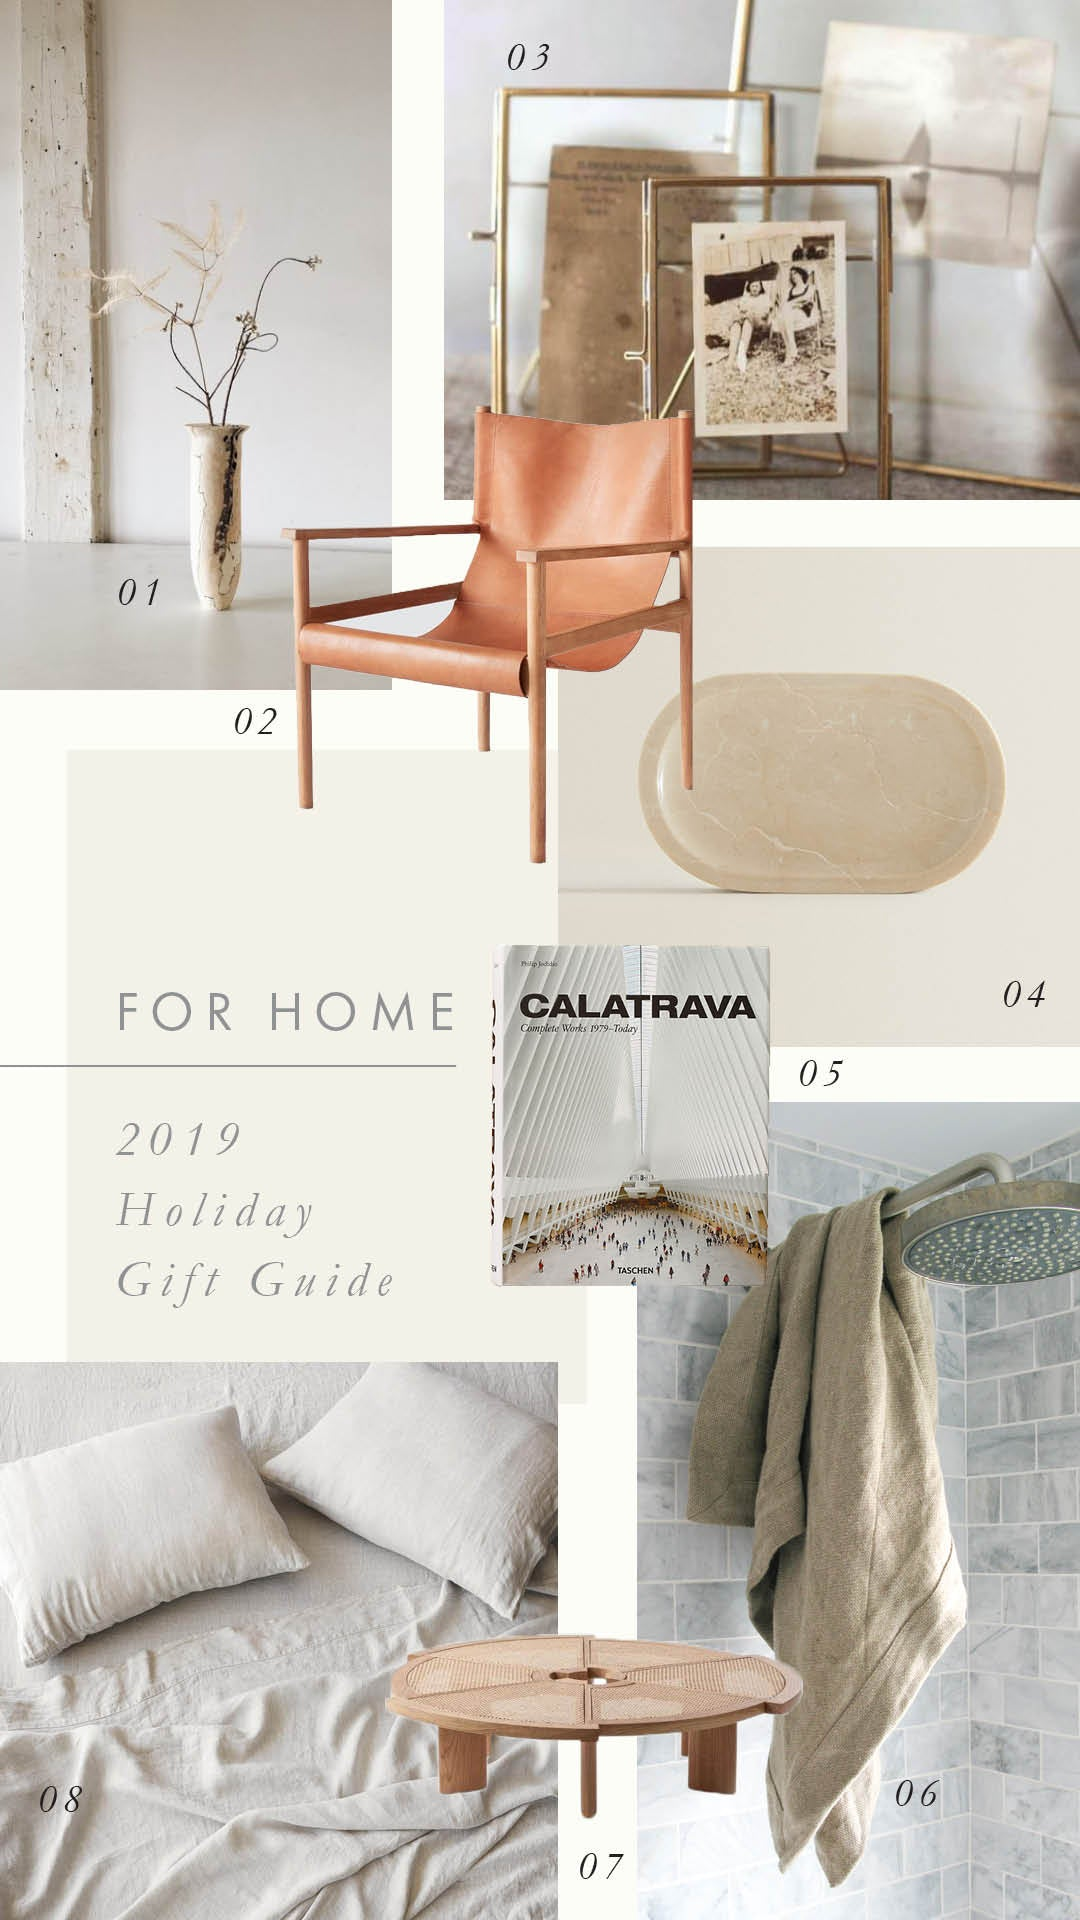 2019 Holiday Gift Guide - For Home